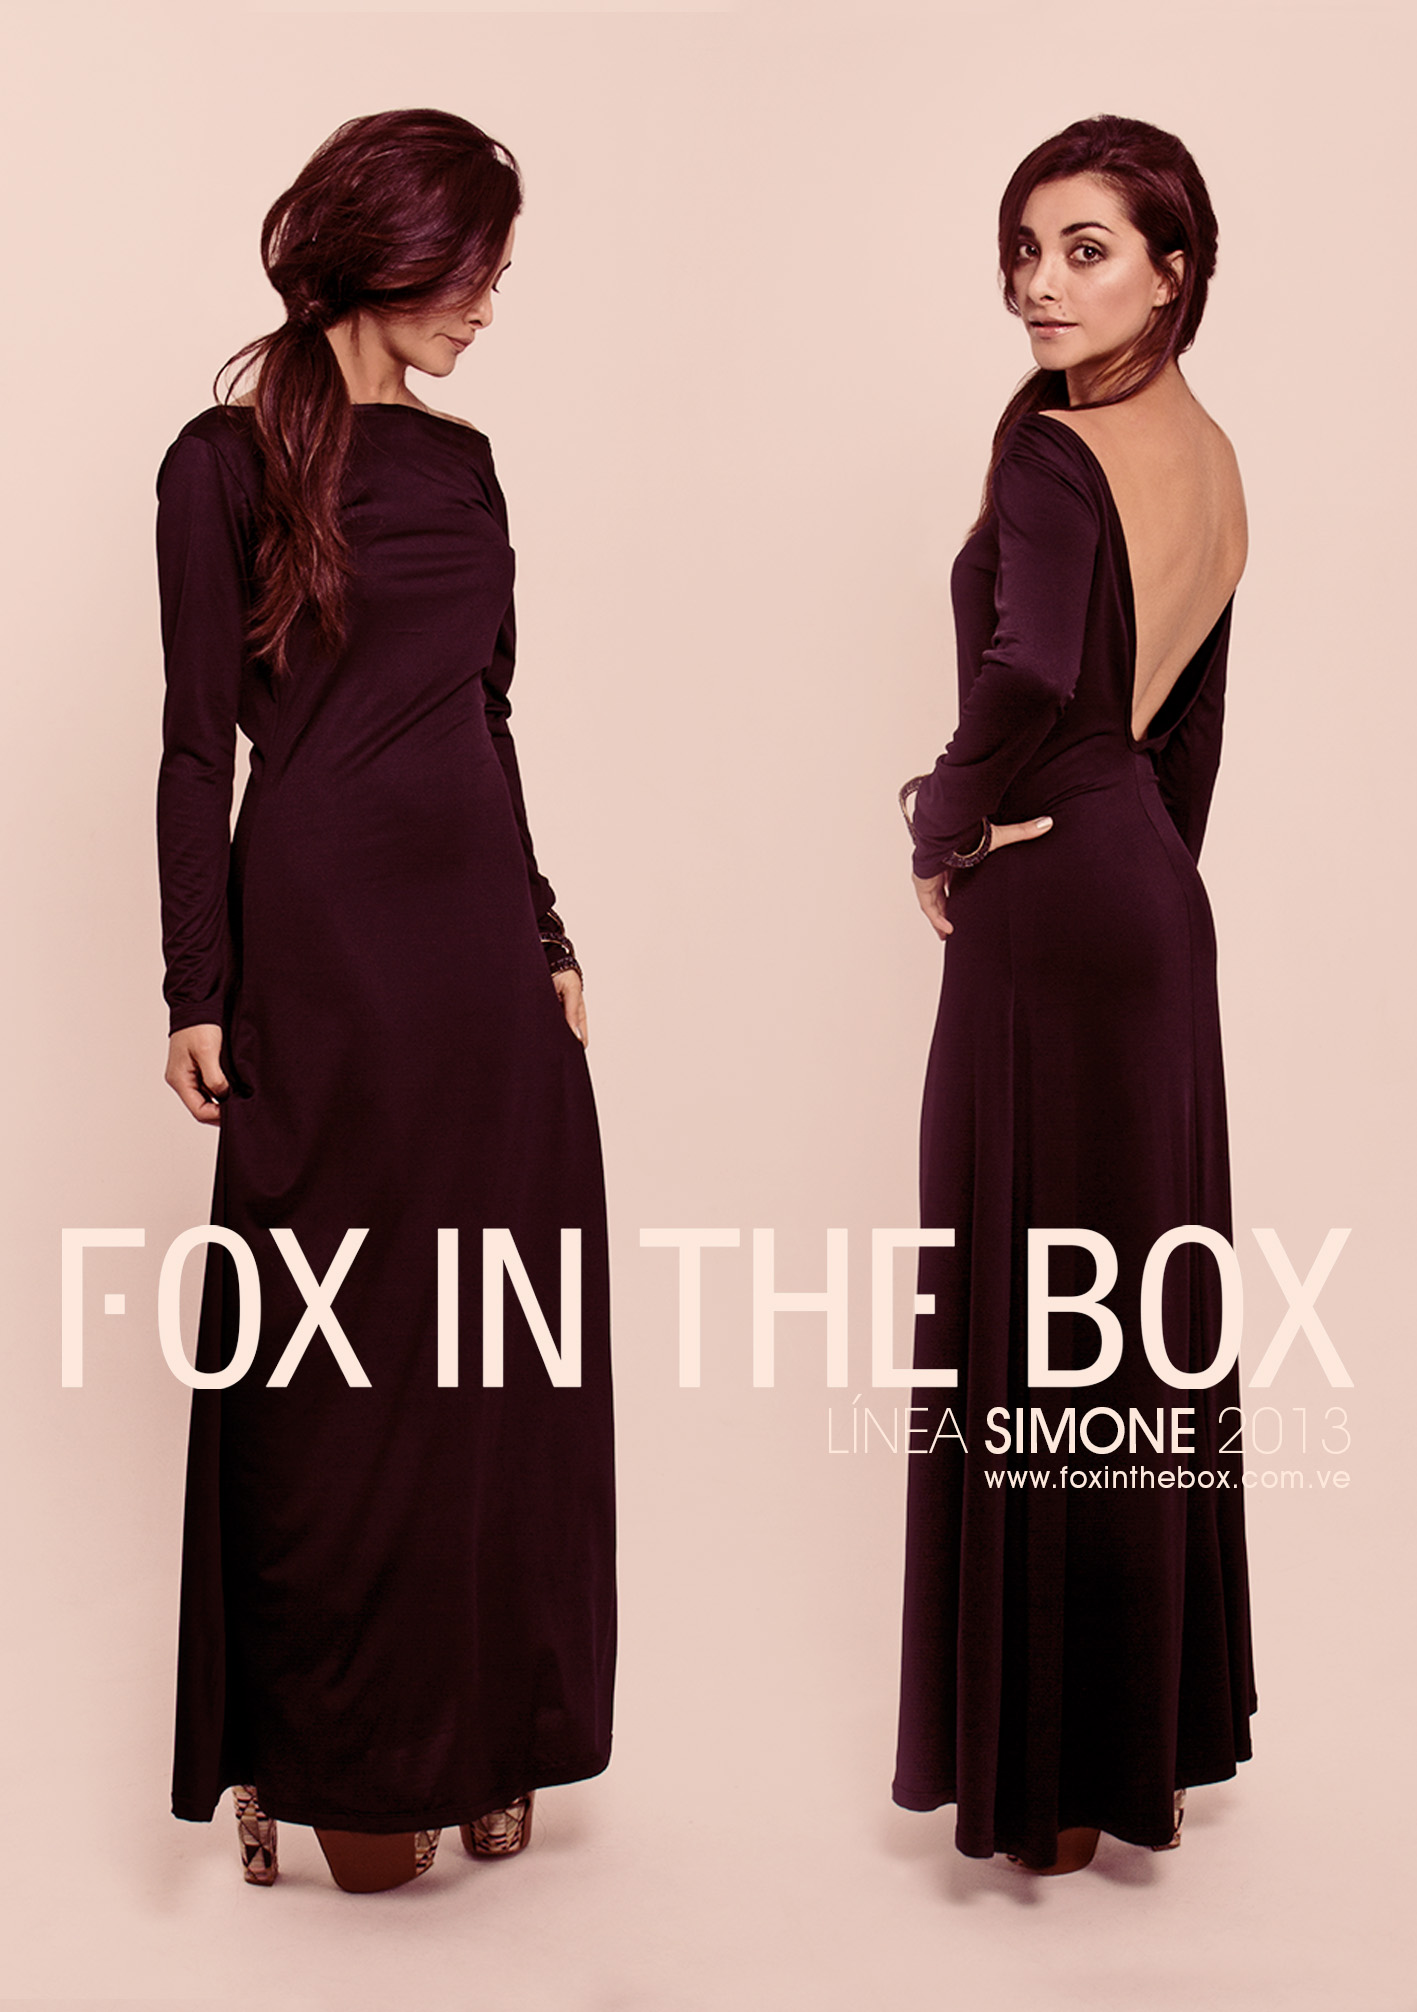 FOX digital simone4